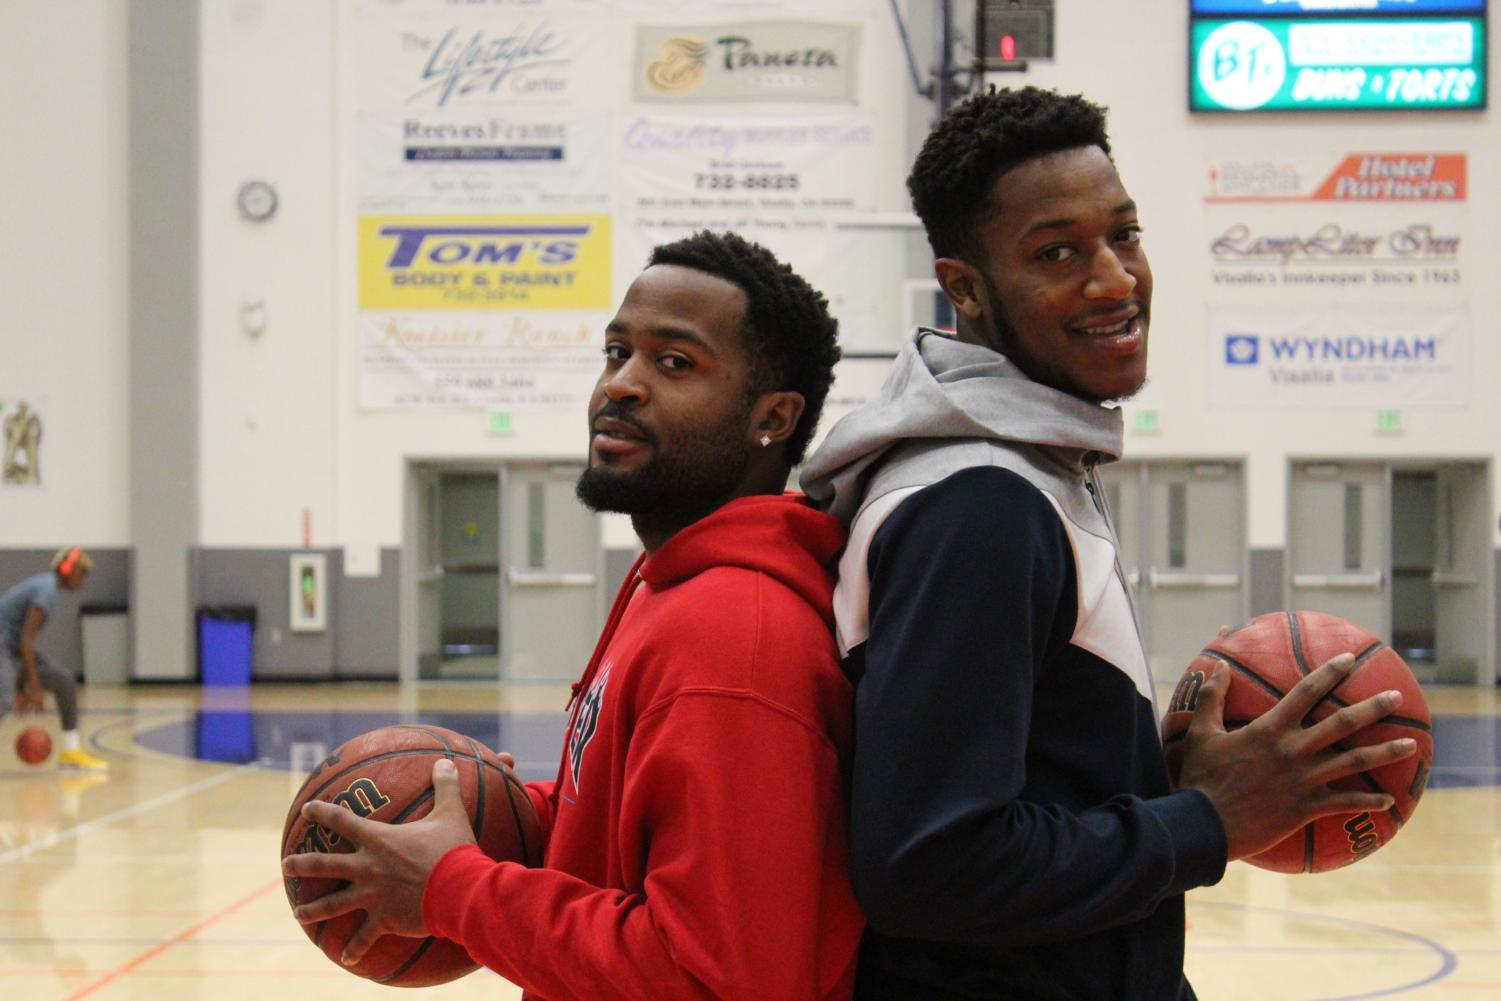 Keshawn Gibbs and Jarell Holmes play basketball together on the COS Men's Basketball team, but their relationship goes deeper than teammates. They're cousins who share a deep love for the sport and they look forward to a prosperous season.